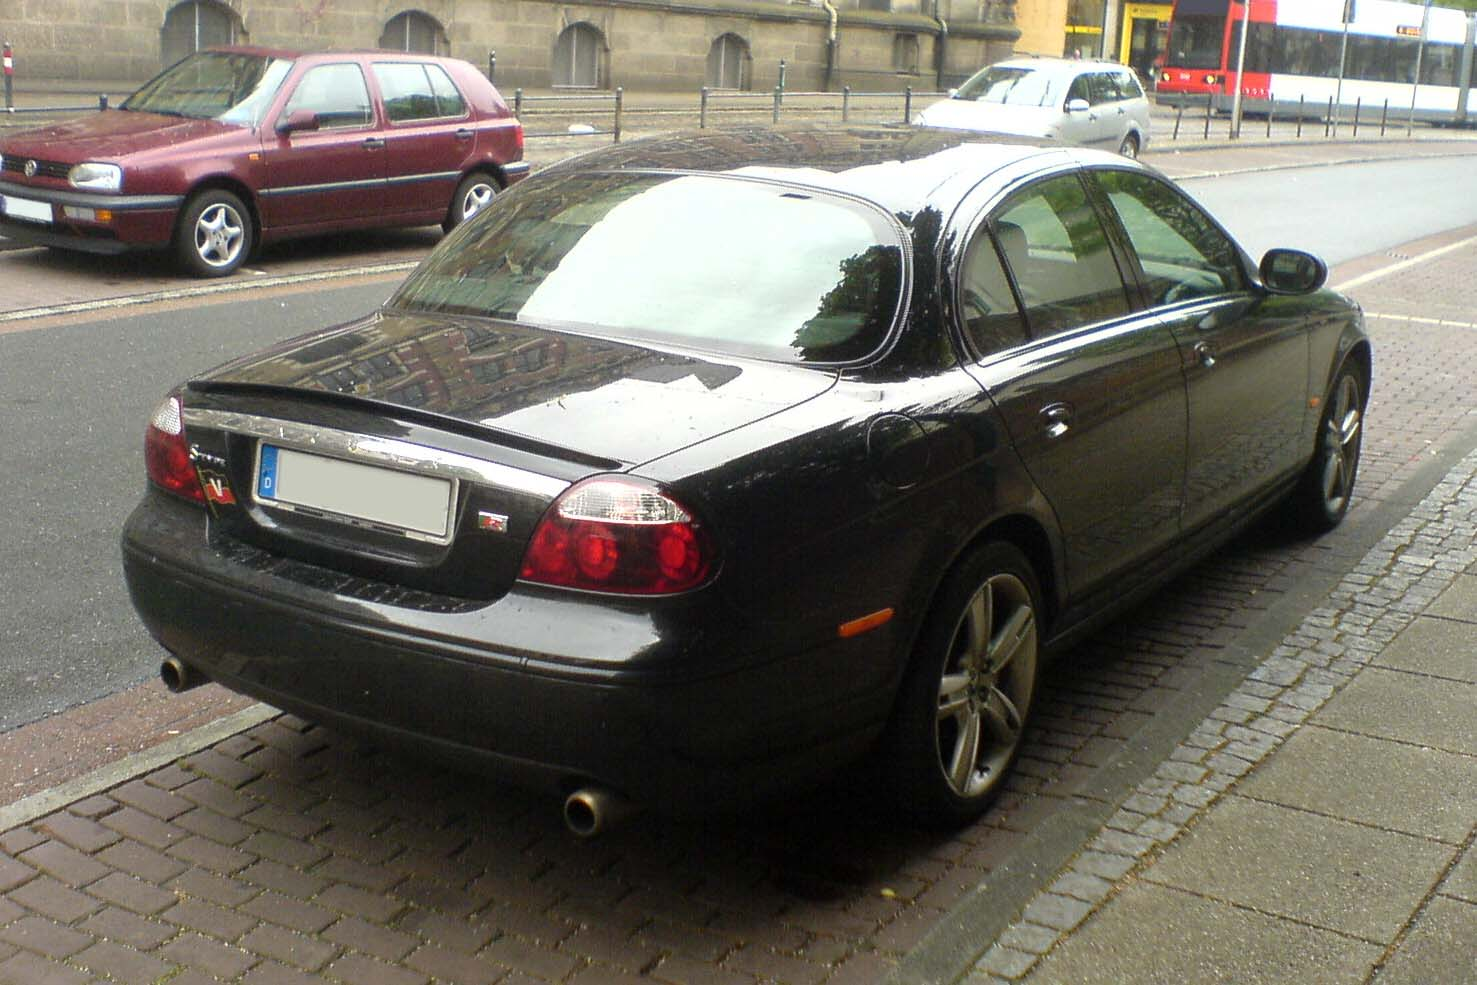 File:Jaguar S-Type R schwarz hr.jpg - Wikimedia Commons